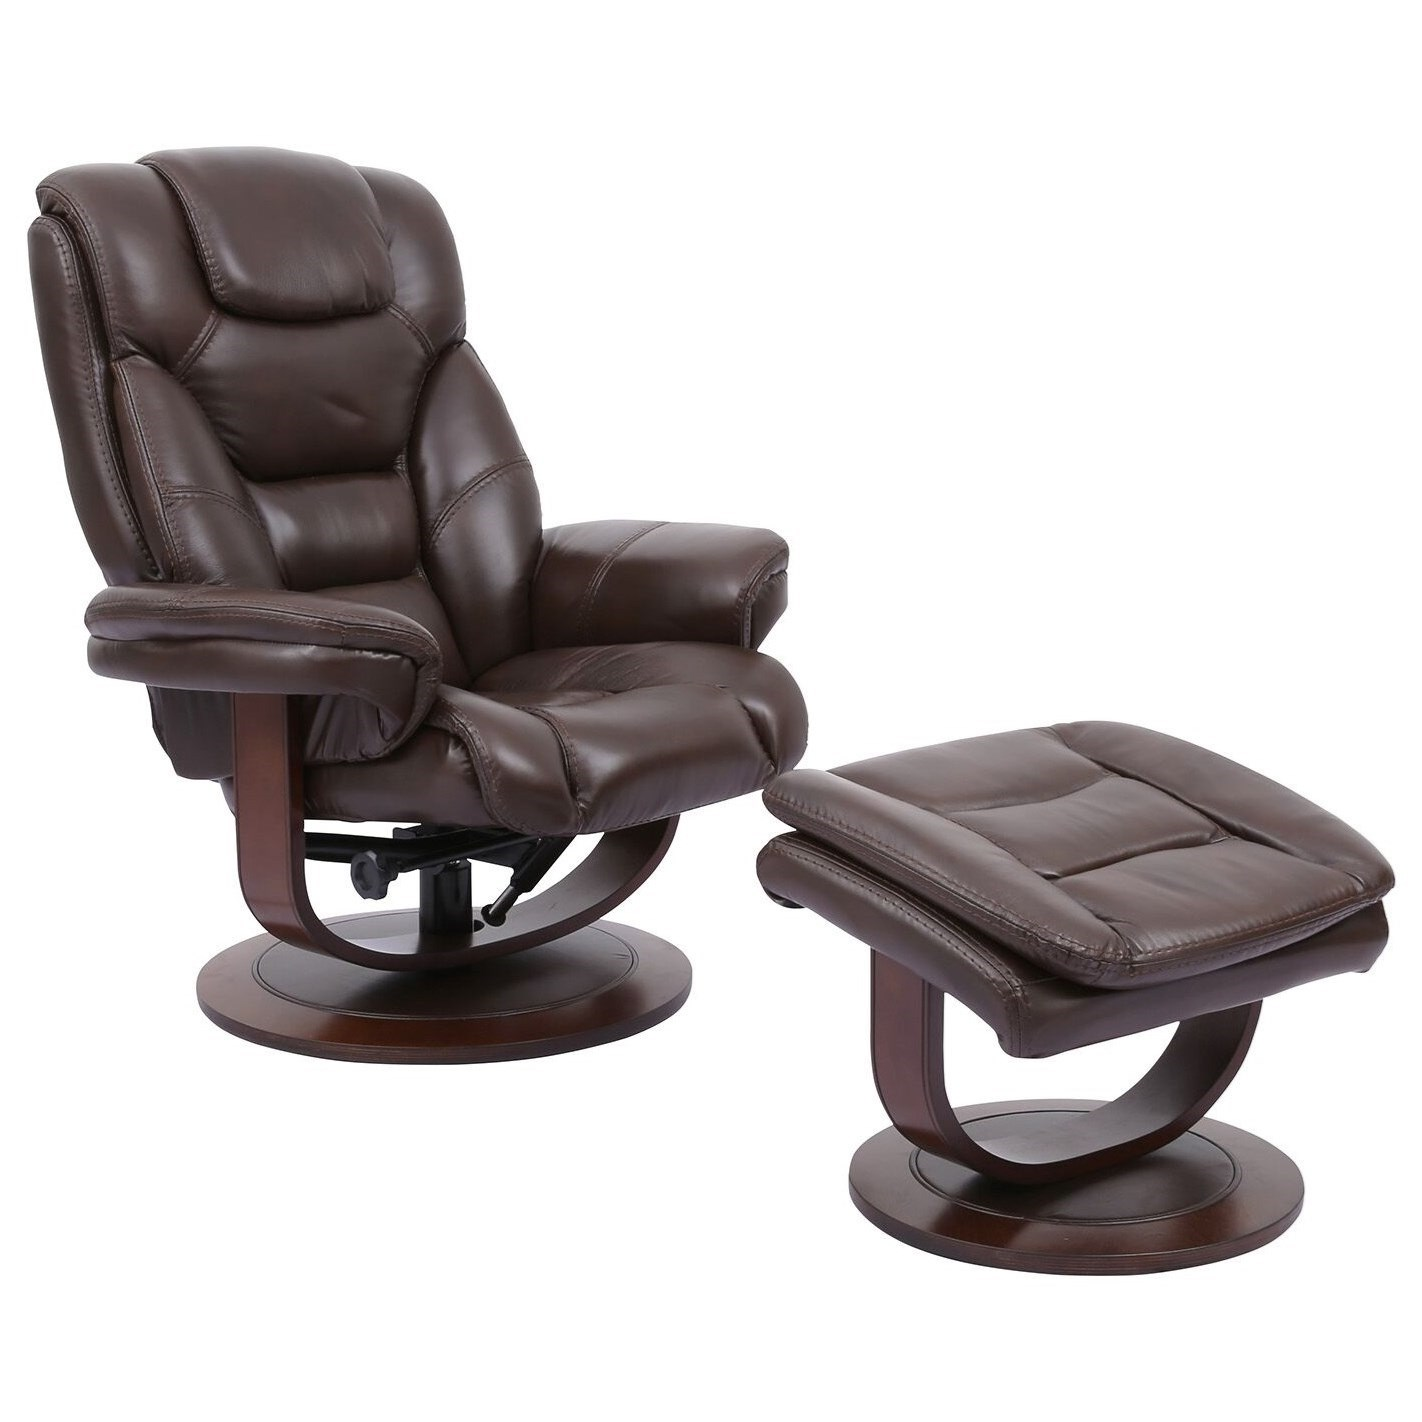 Monarch Swivel Recliner & Ottoman by Parker Living at Zak's Home